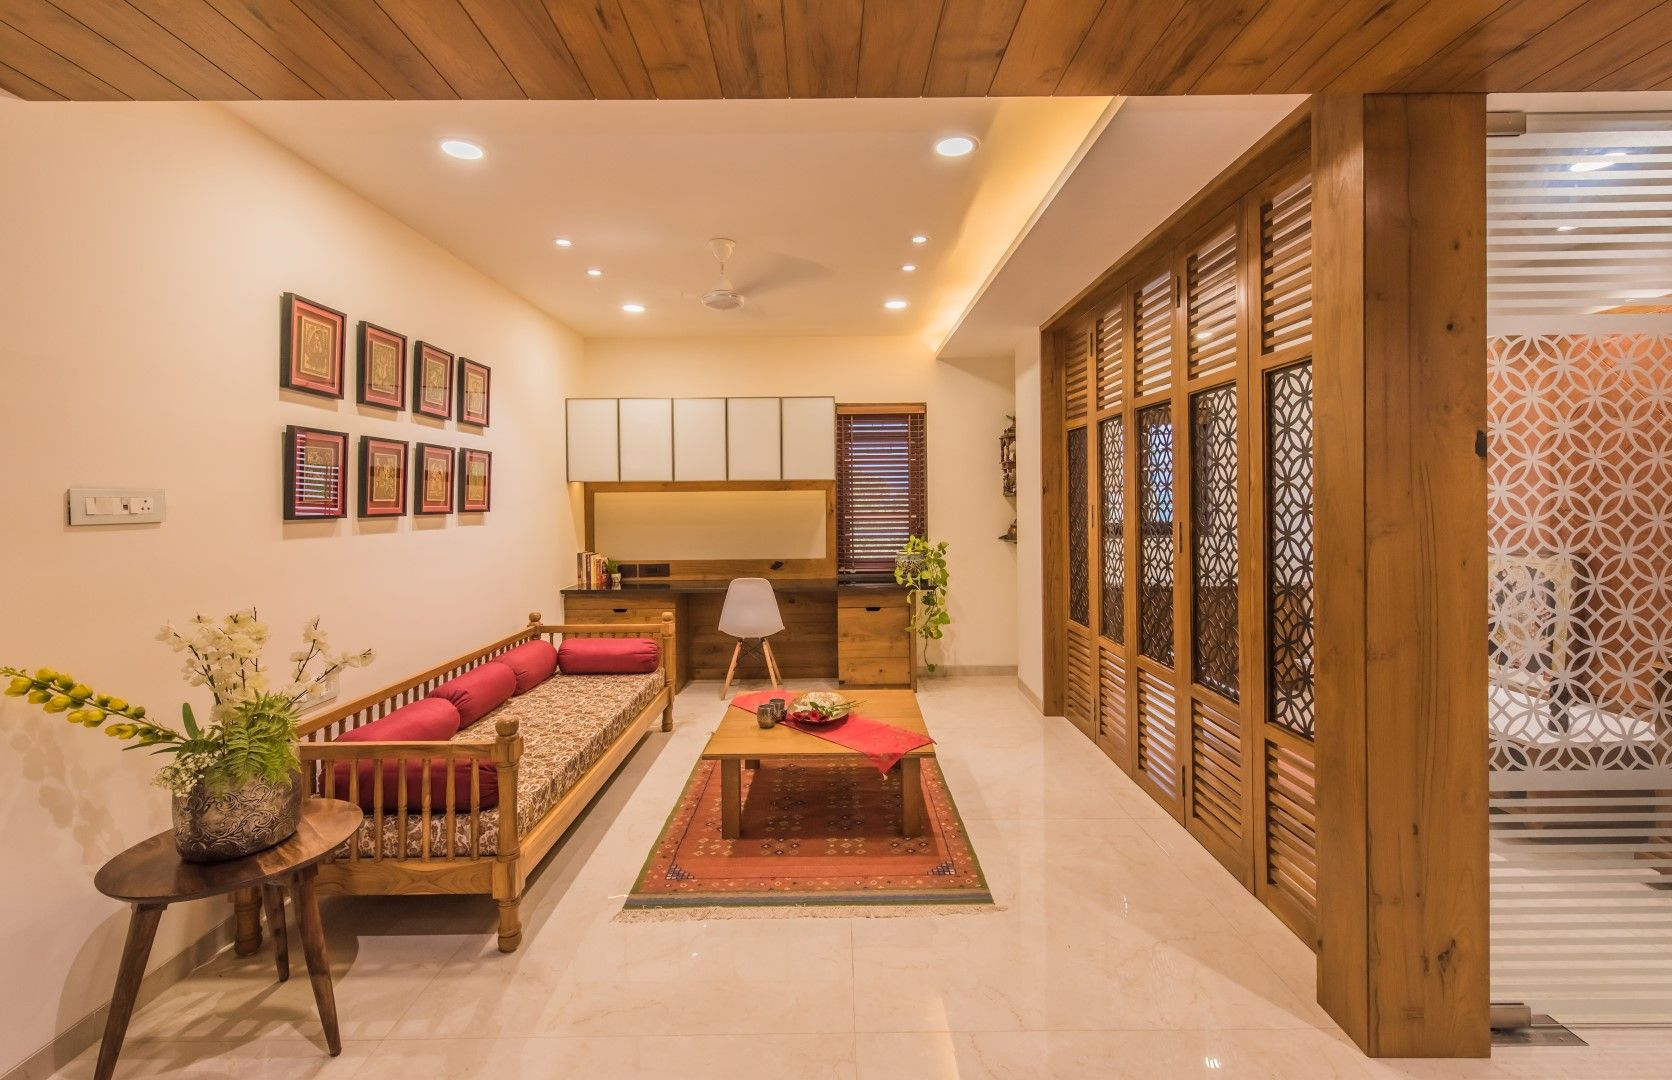 Contemporary Indian Style Apartment Interiors | Indian ...